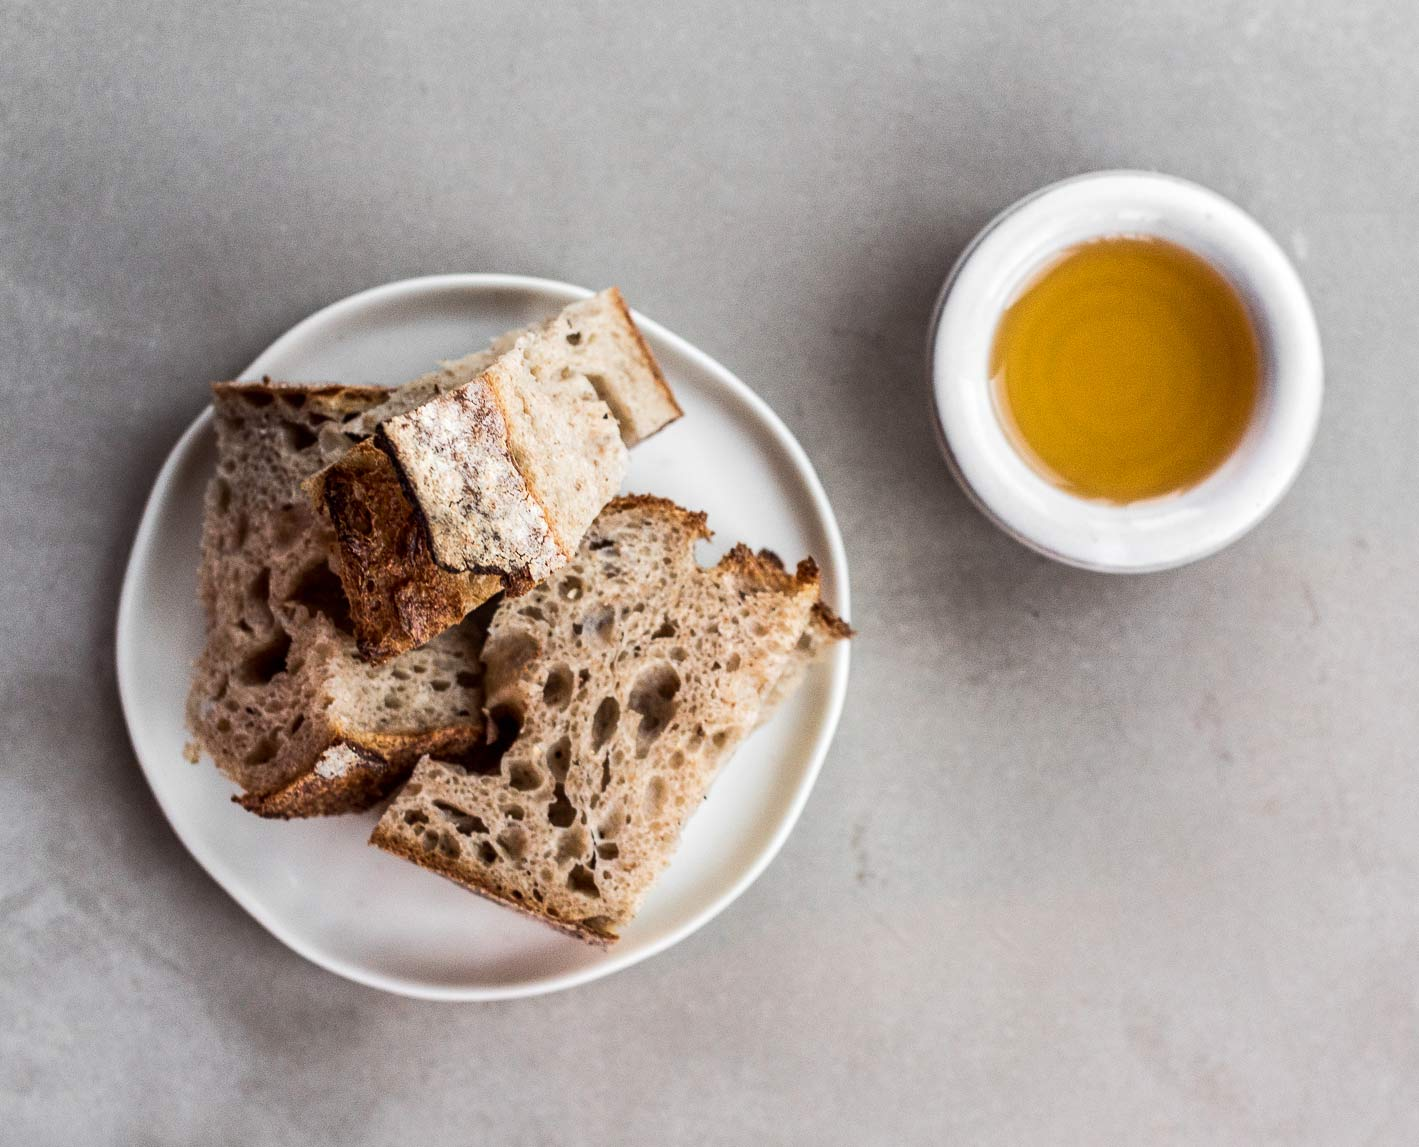 Picture of our Moroccan Culinary Argan Oil set in a bowl alongside a lightly toasted slice of bread